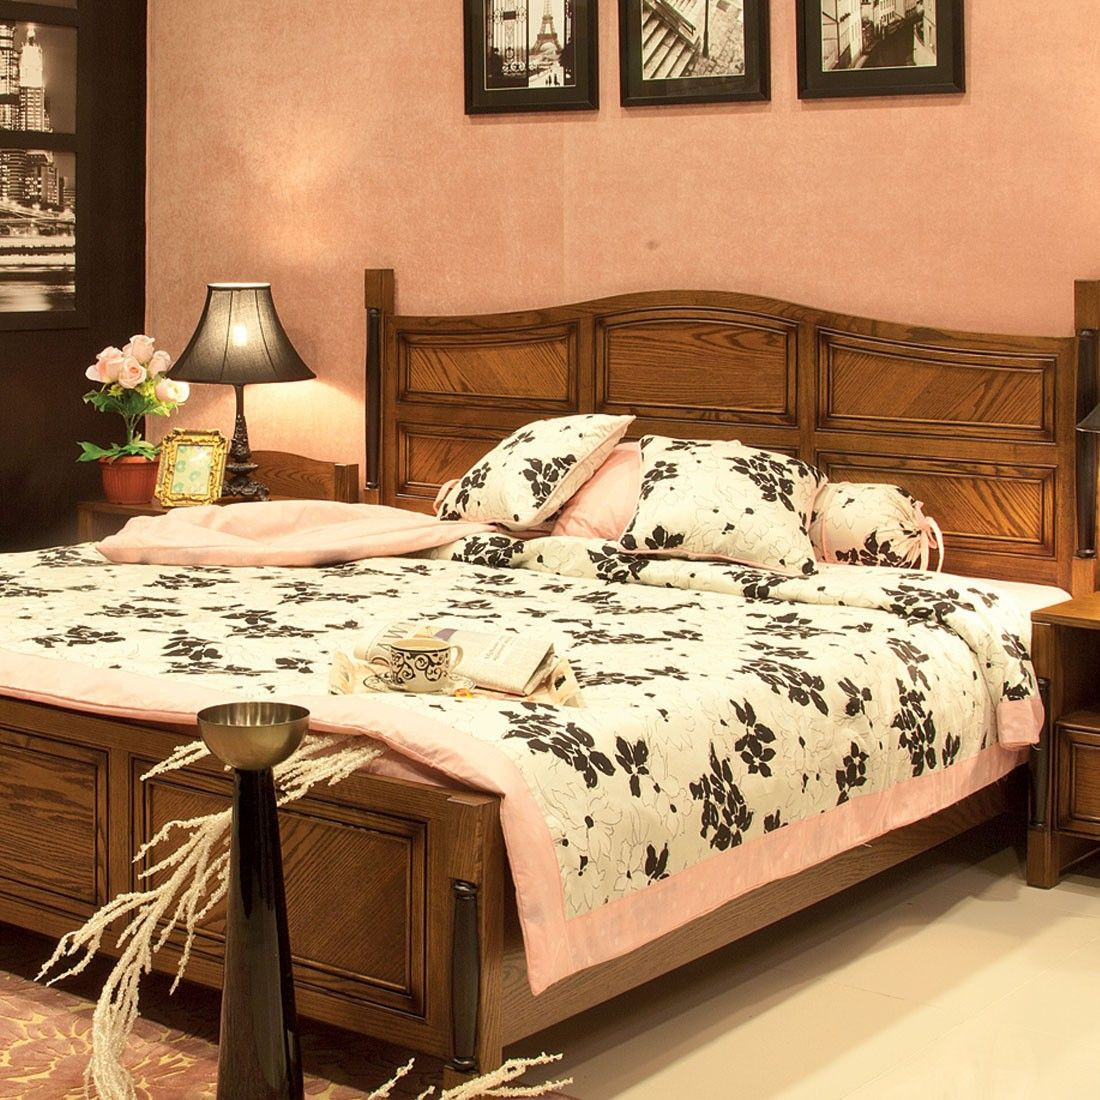 Our sturdy double queen and king size beds with the